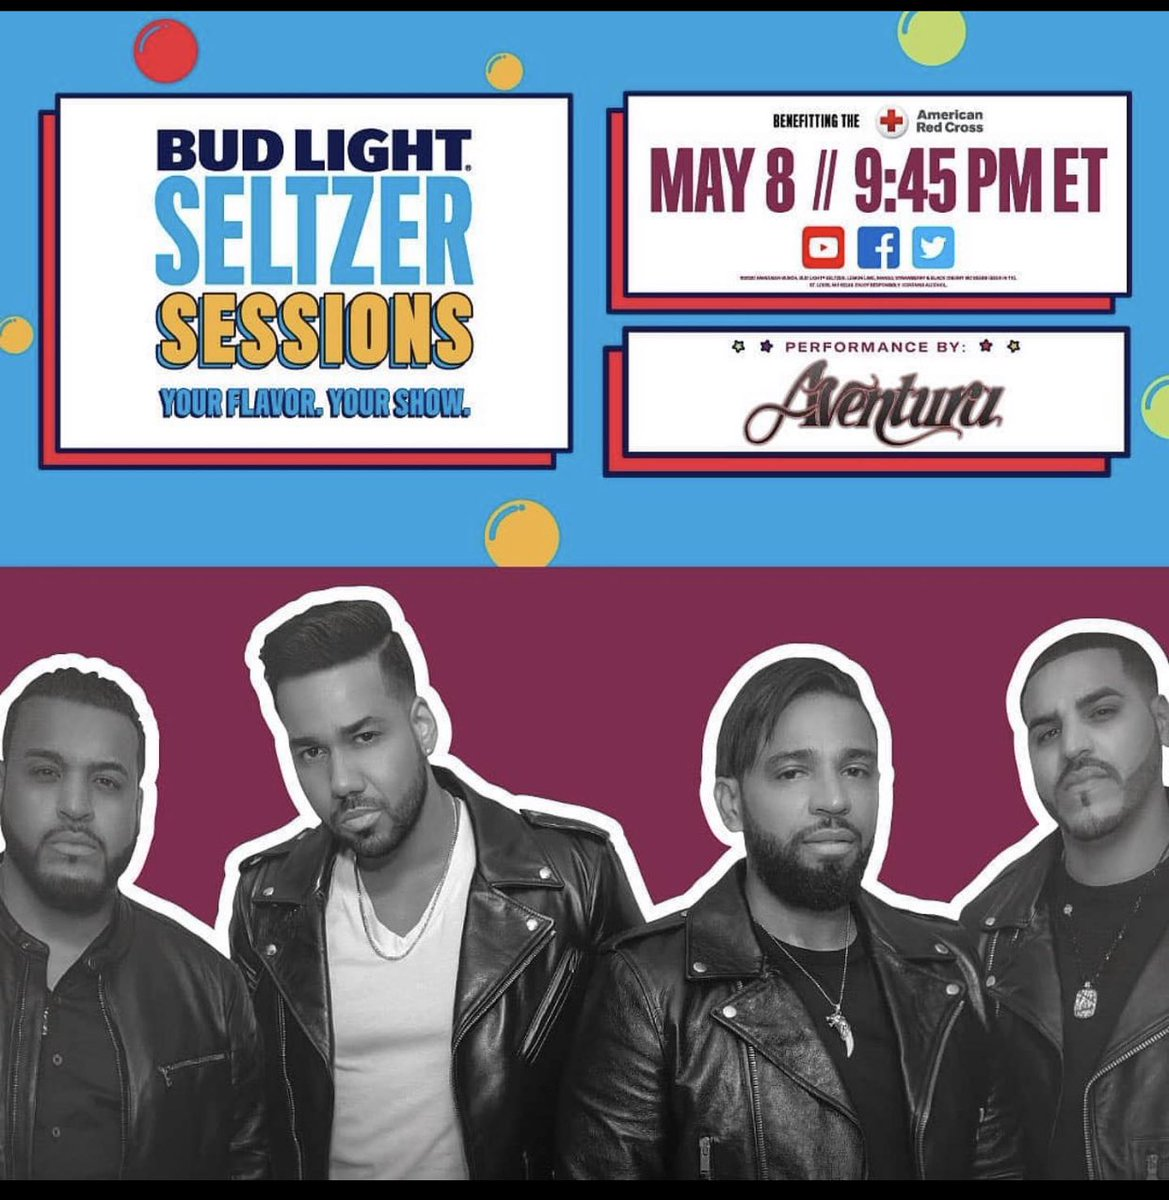 This Friday at 9:45 pm EST @romeosantos will be live on Facebook with @aventura part of the Seltzer Sessions @BudLight! #RomeoSantos #Aventura #UTAMusic